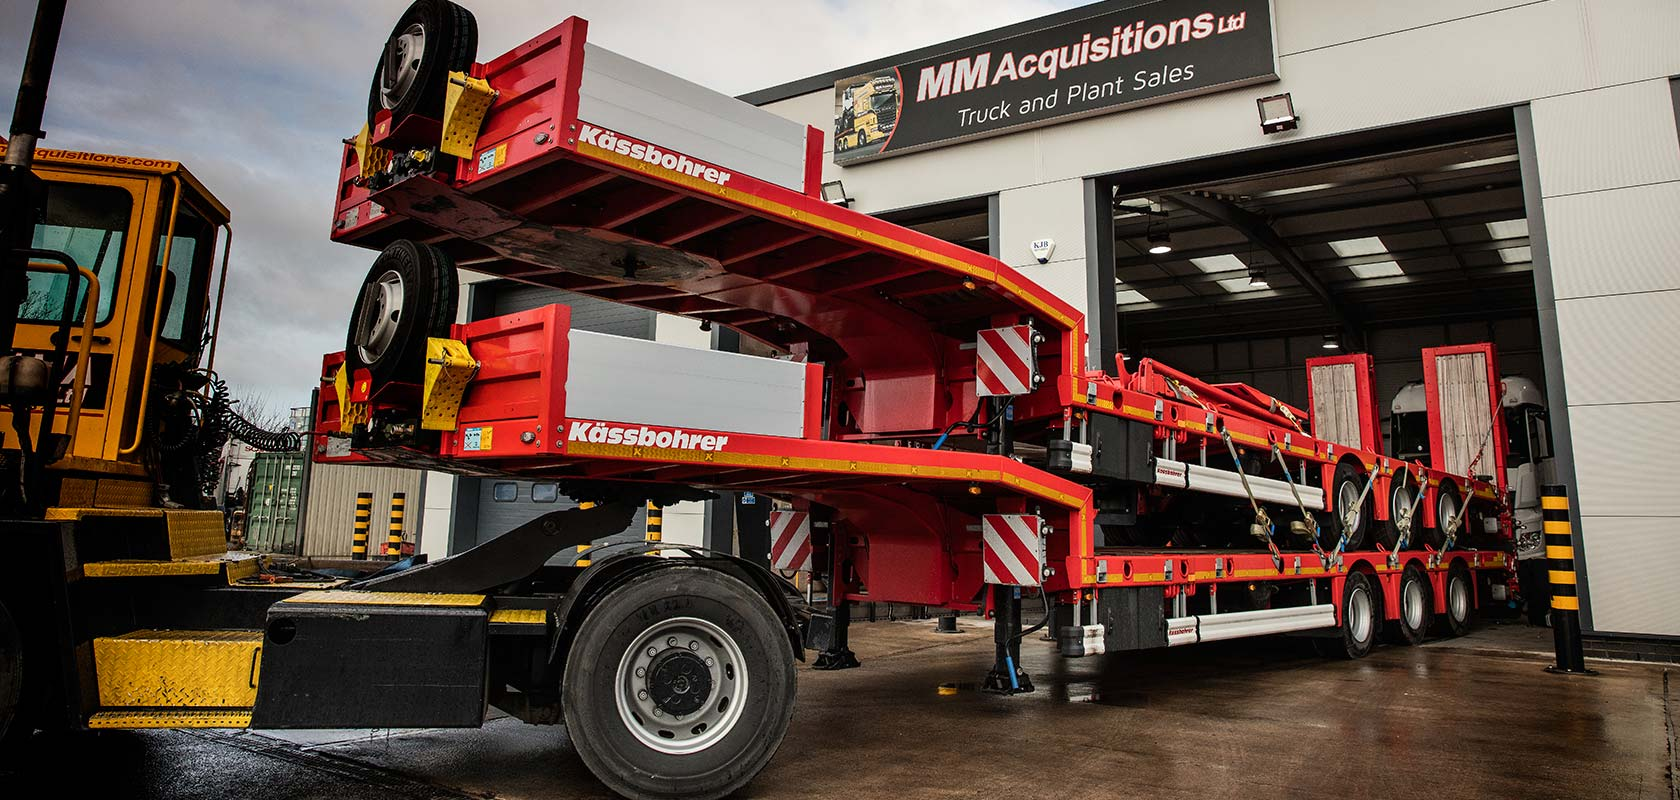 M M Acquisitions Ltd